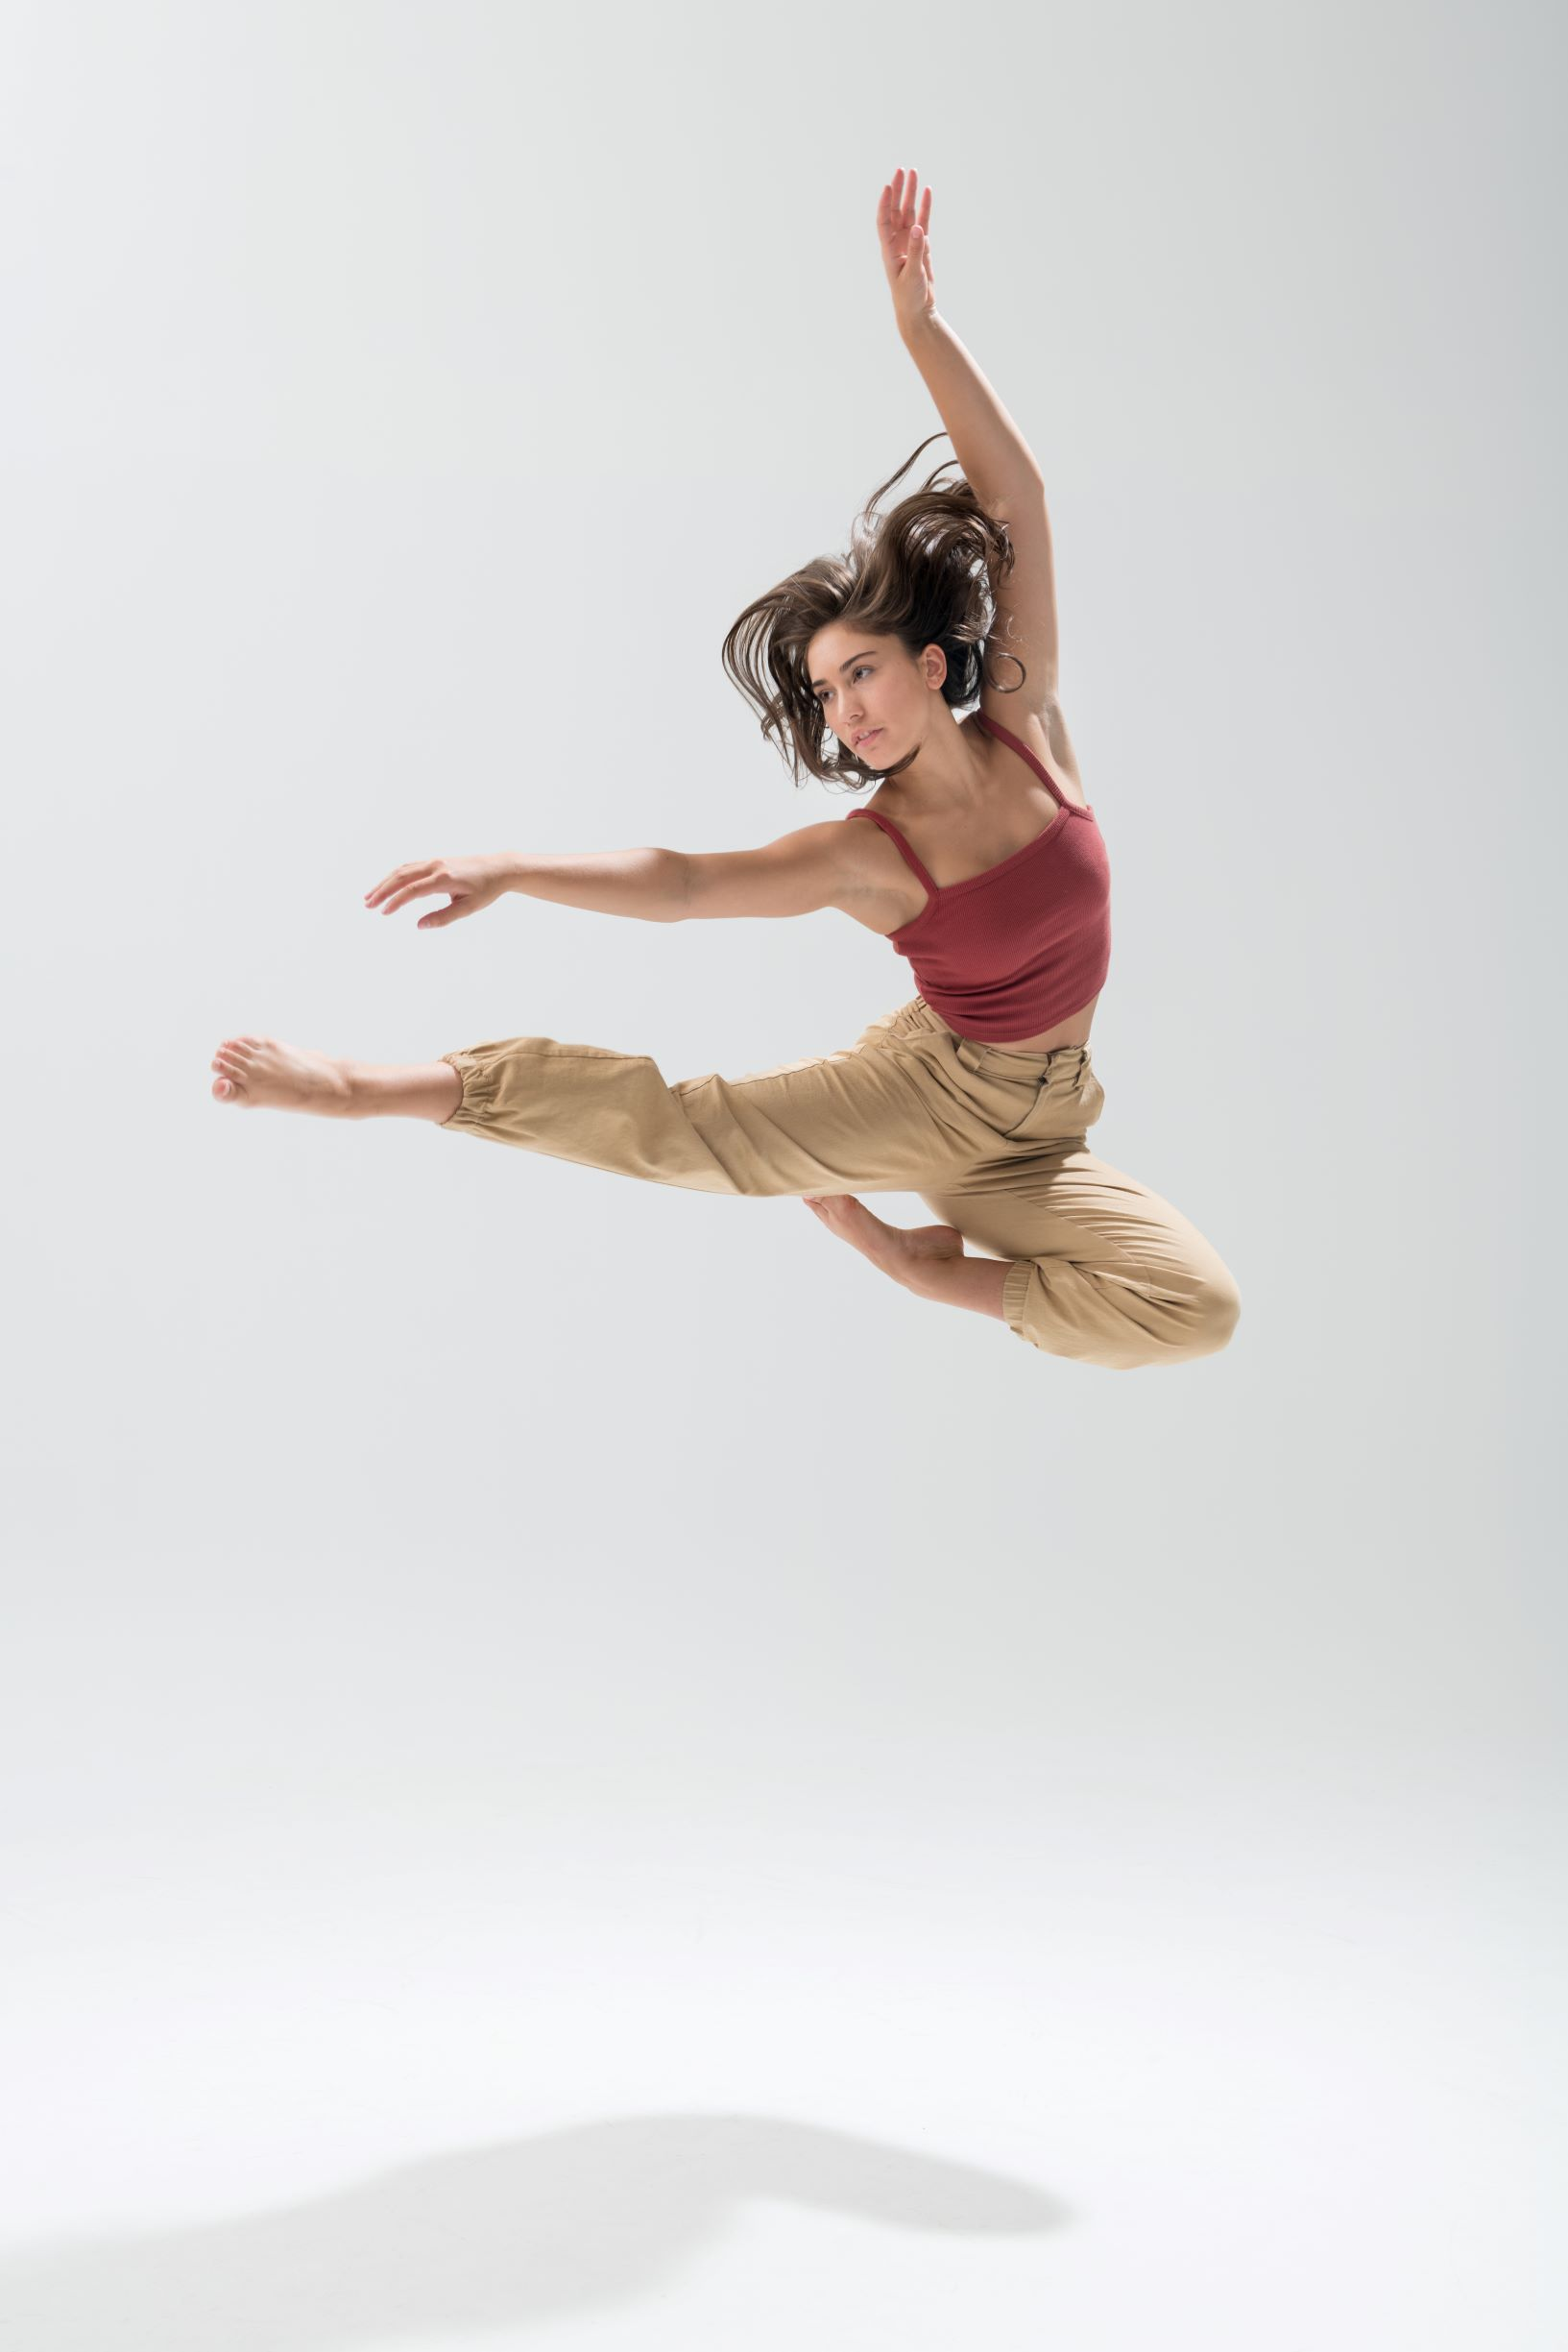 NZSD 2019 contemporary dance student Cheyanne Teka